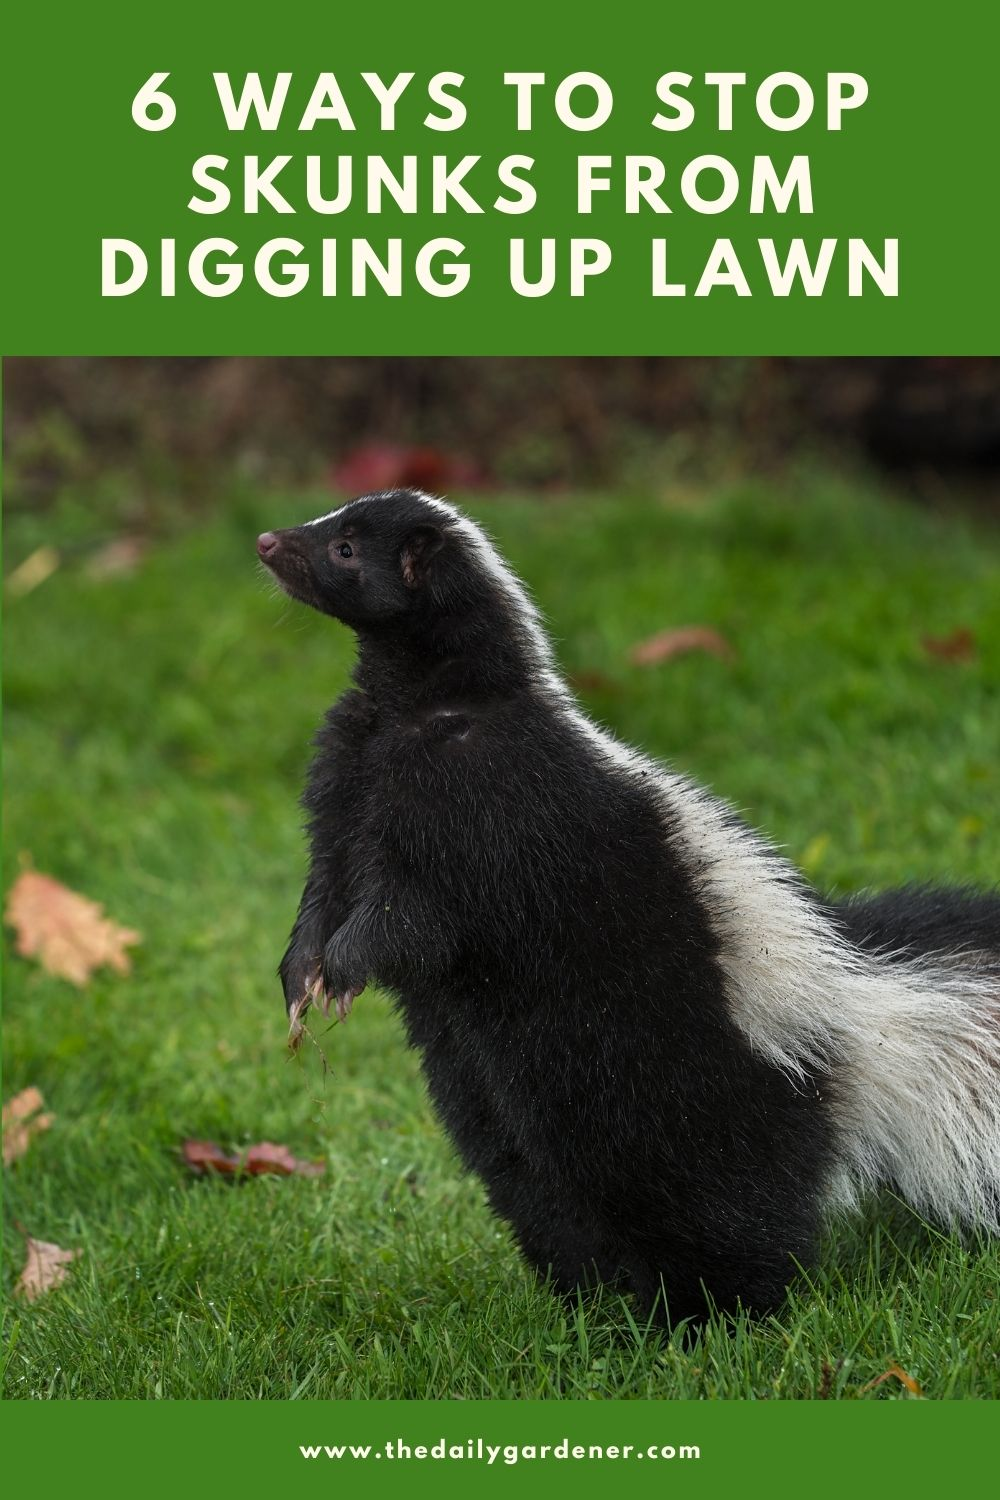 6 Ways to Stop Skunks from Digging Up Lawn 1